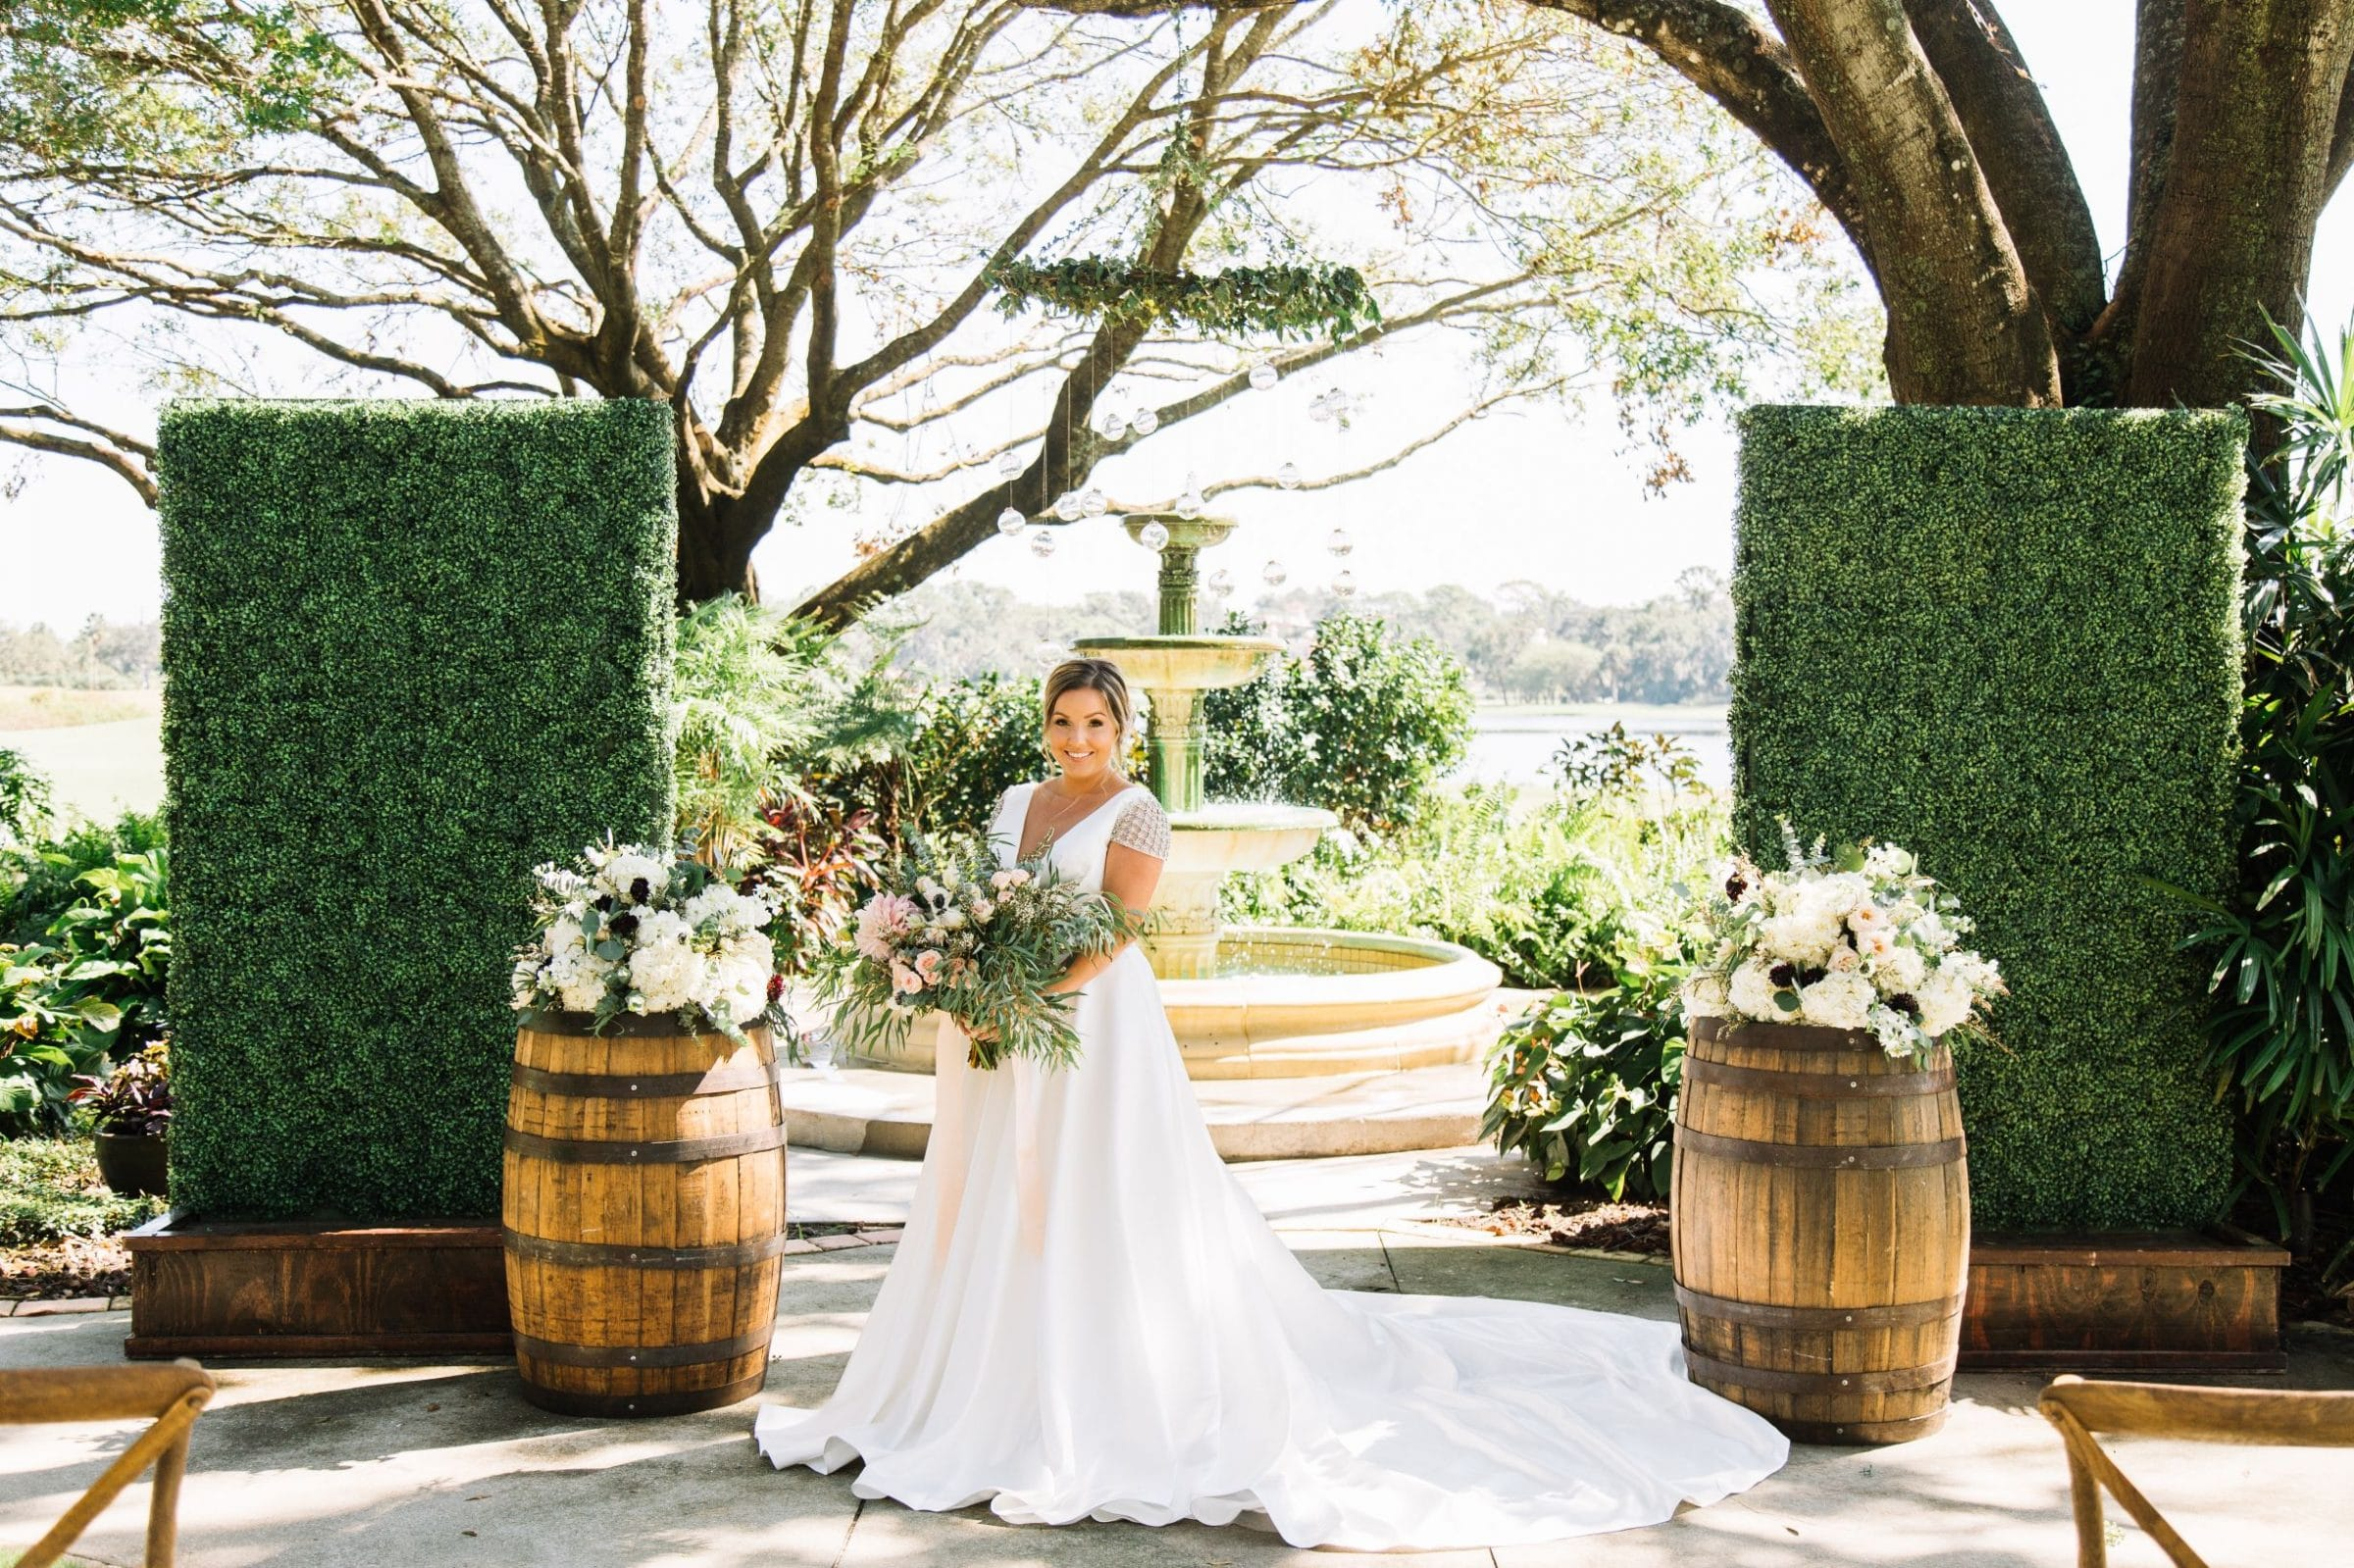 Bride in front of fountain with oak barrels